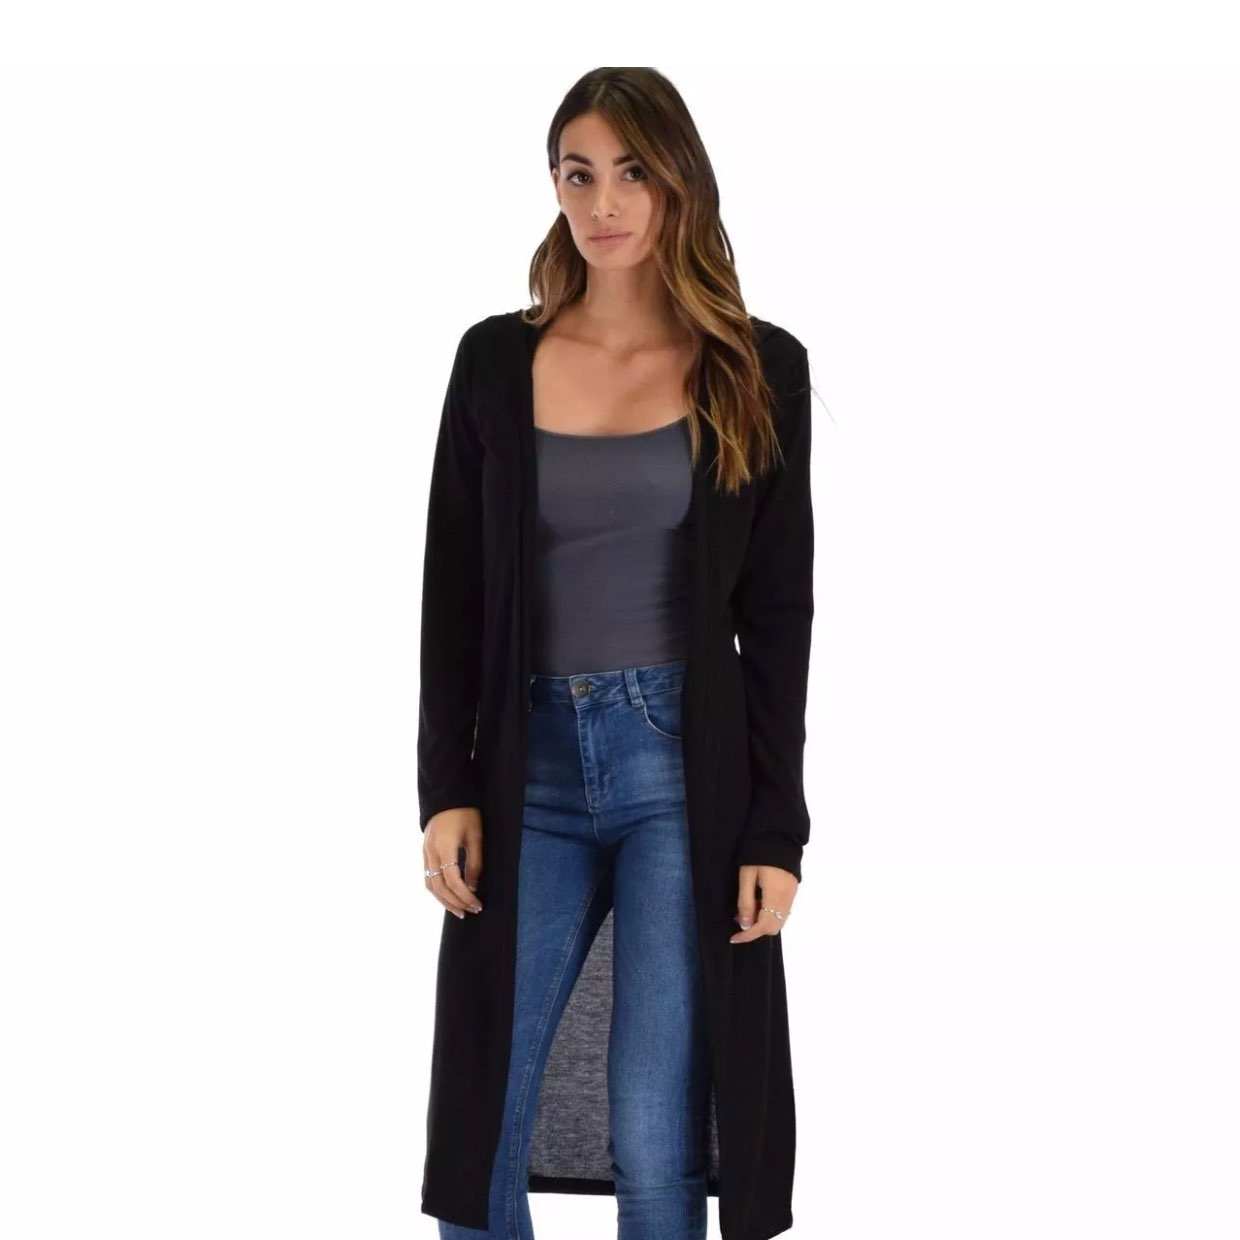 Long Light Weight Hooded Cardigan - Mercari: BUY & SELL THINGS YOU ...